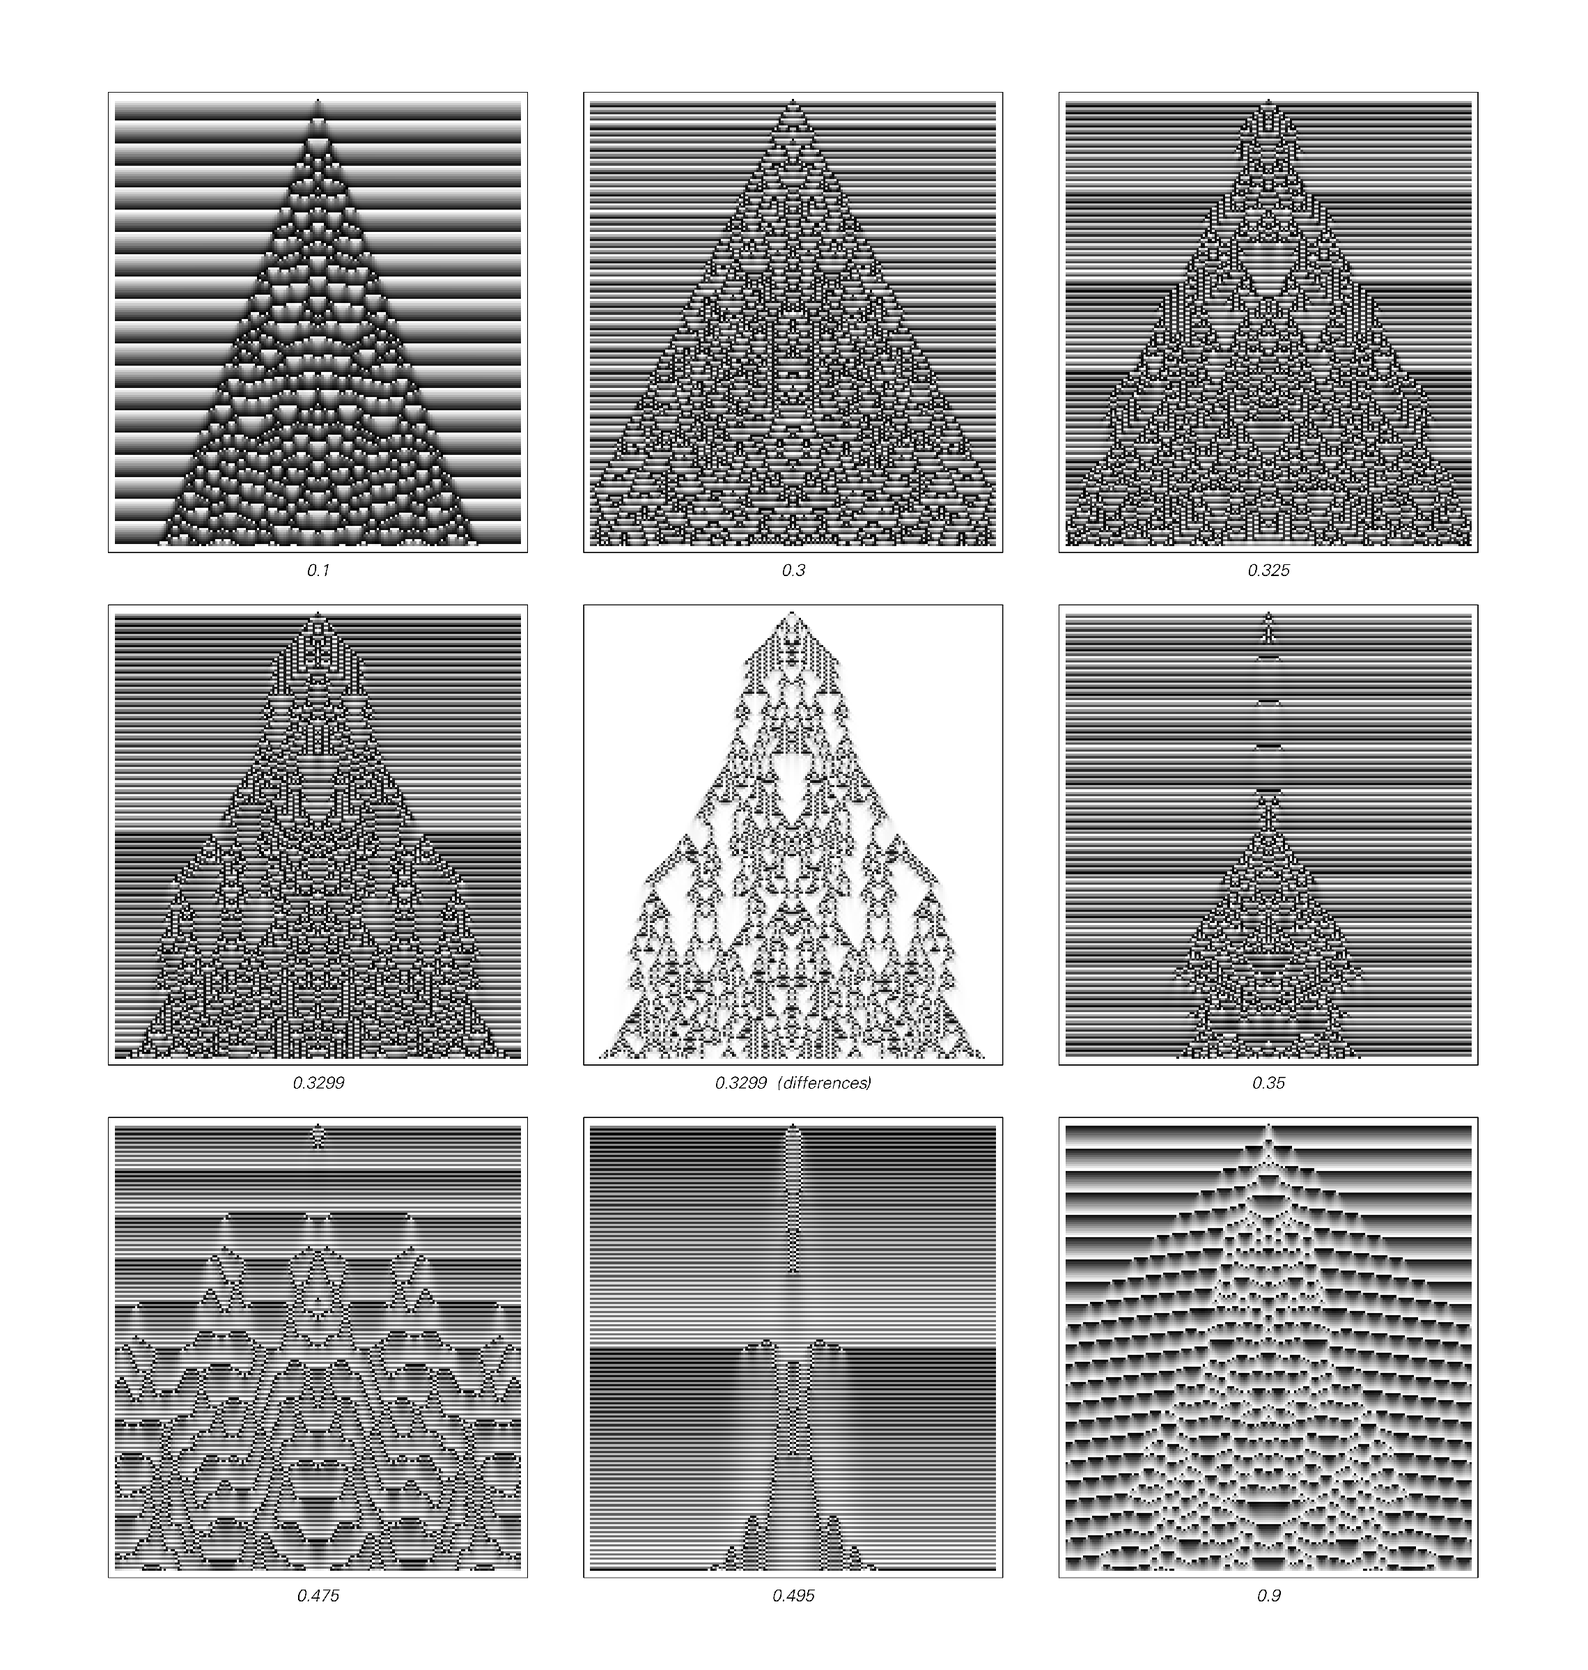 Continued evolution of continuous cellular automata